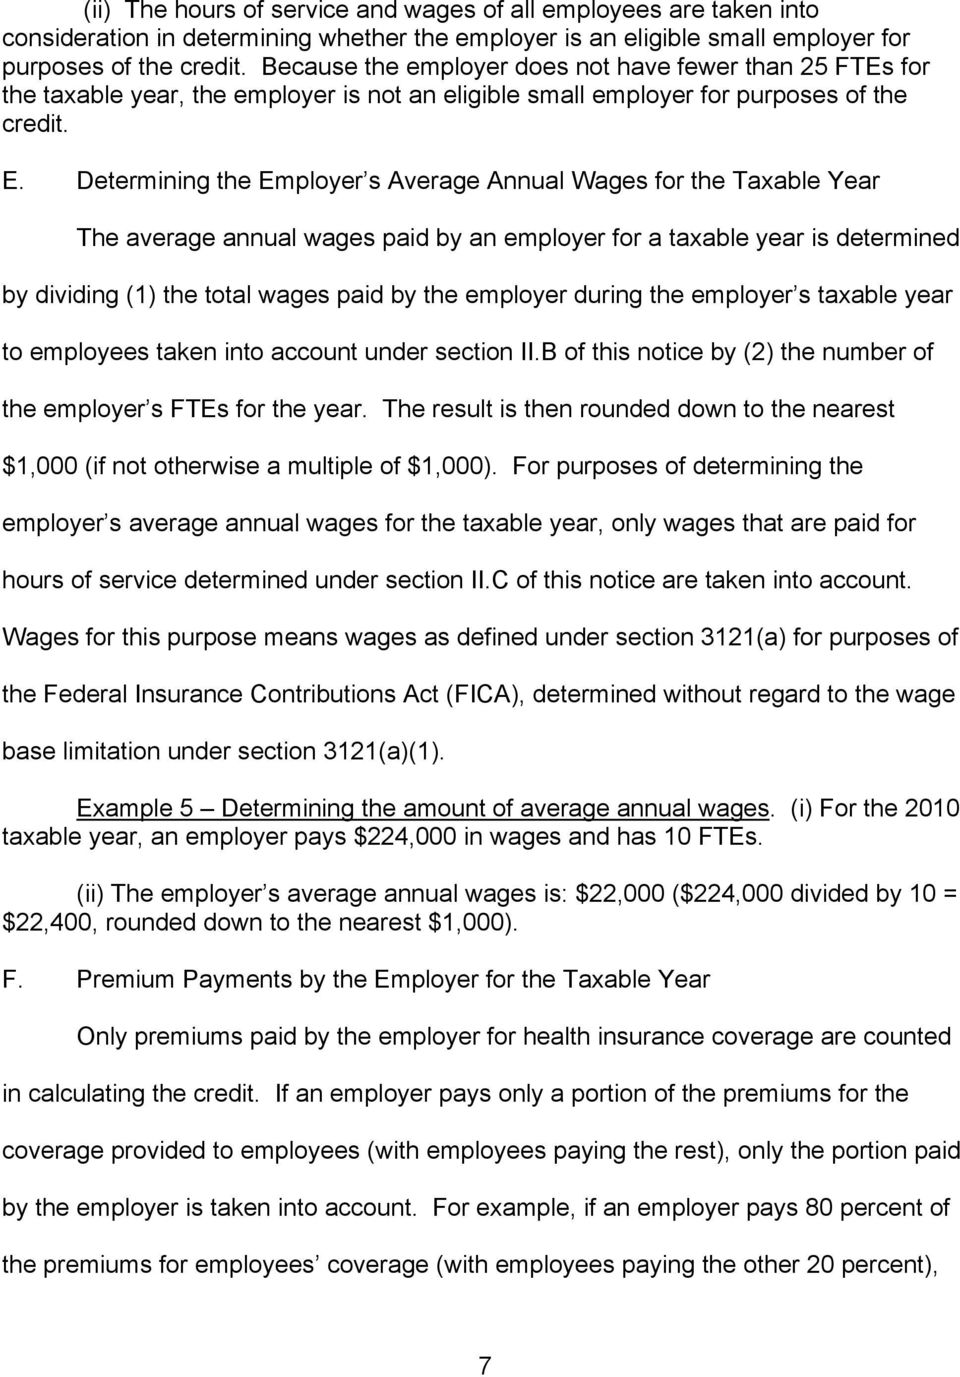 Determining the Employer s Average Annual Wages for the Taxable Year The average annual wages paid by an employer for a taxable year is determined by dividing (1) the total wages paid by the employer